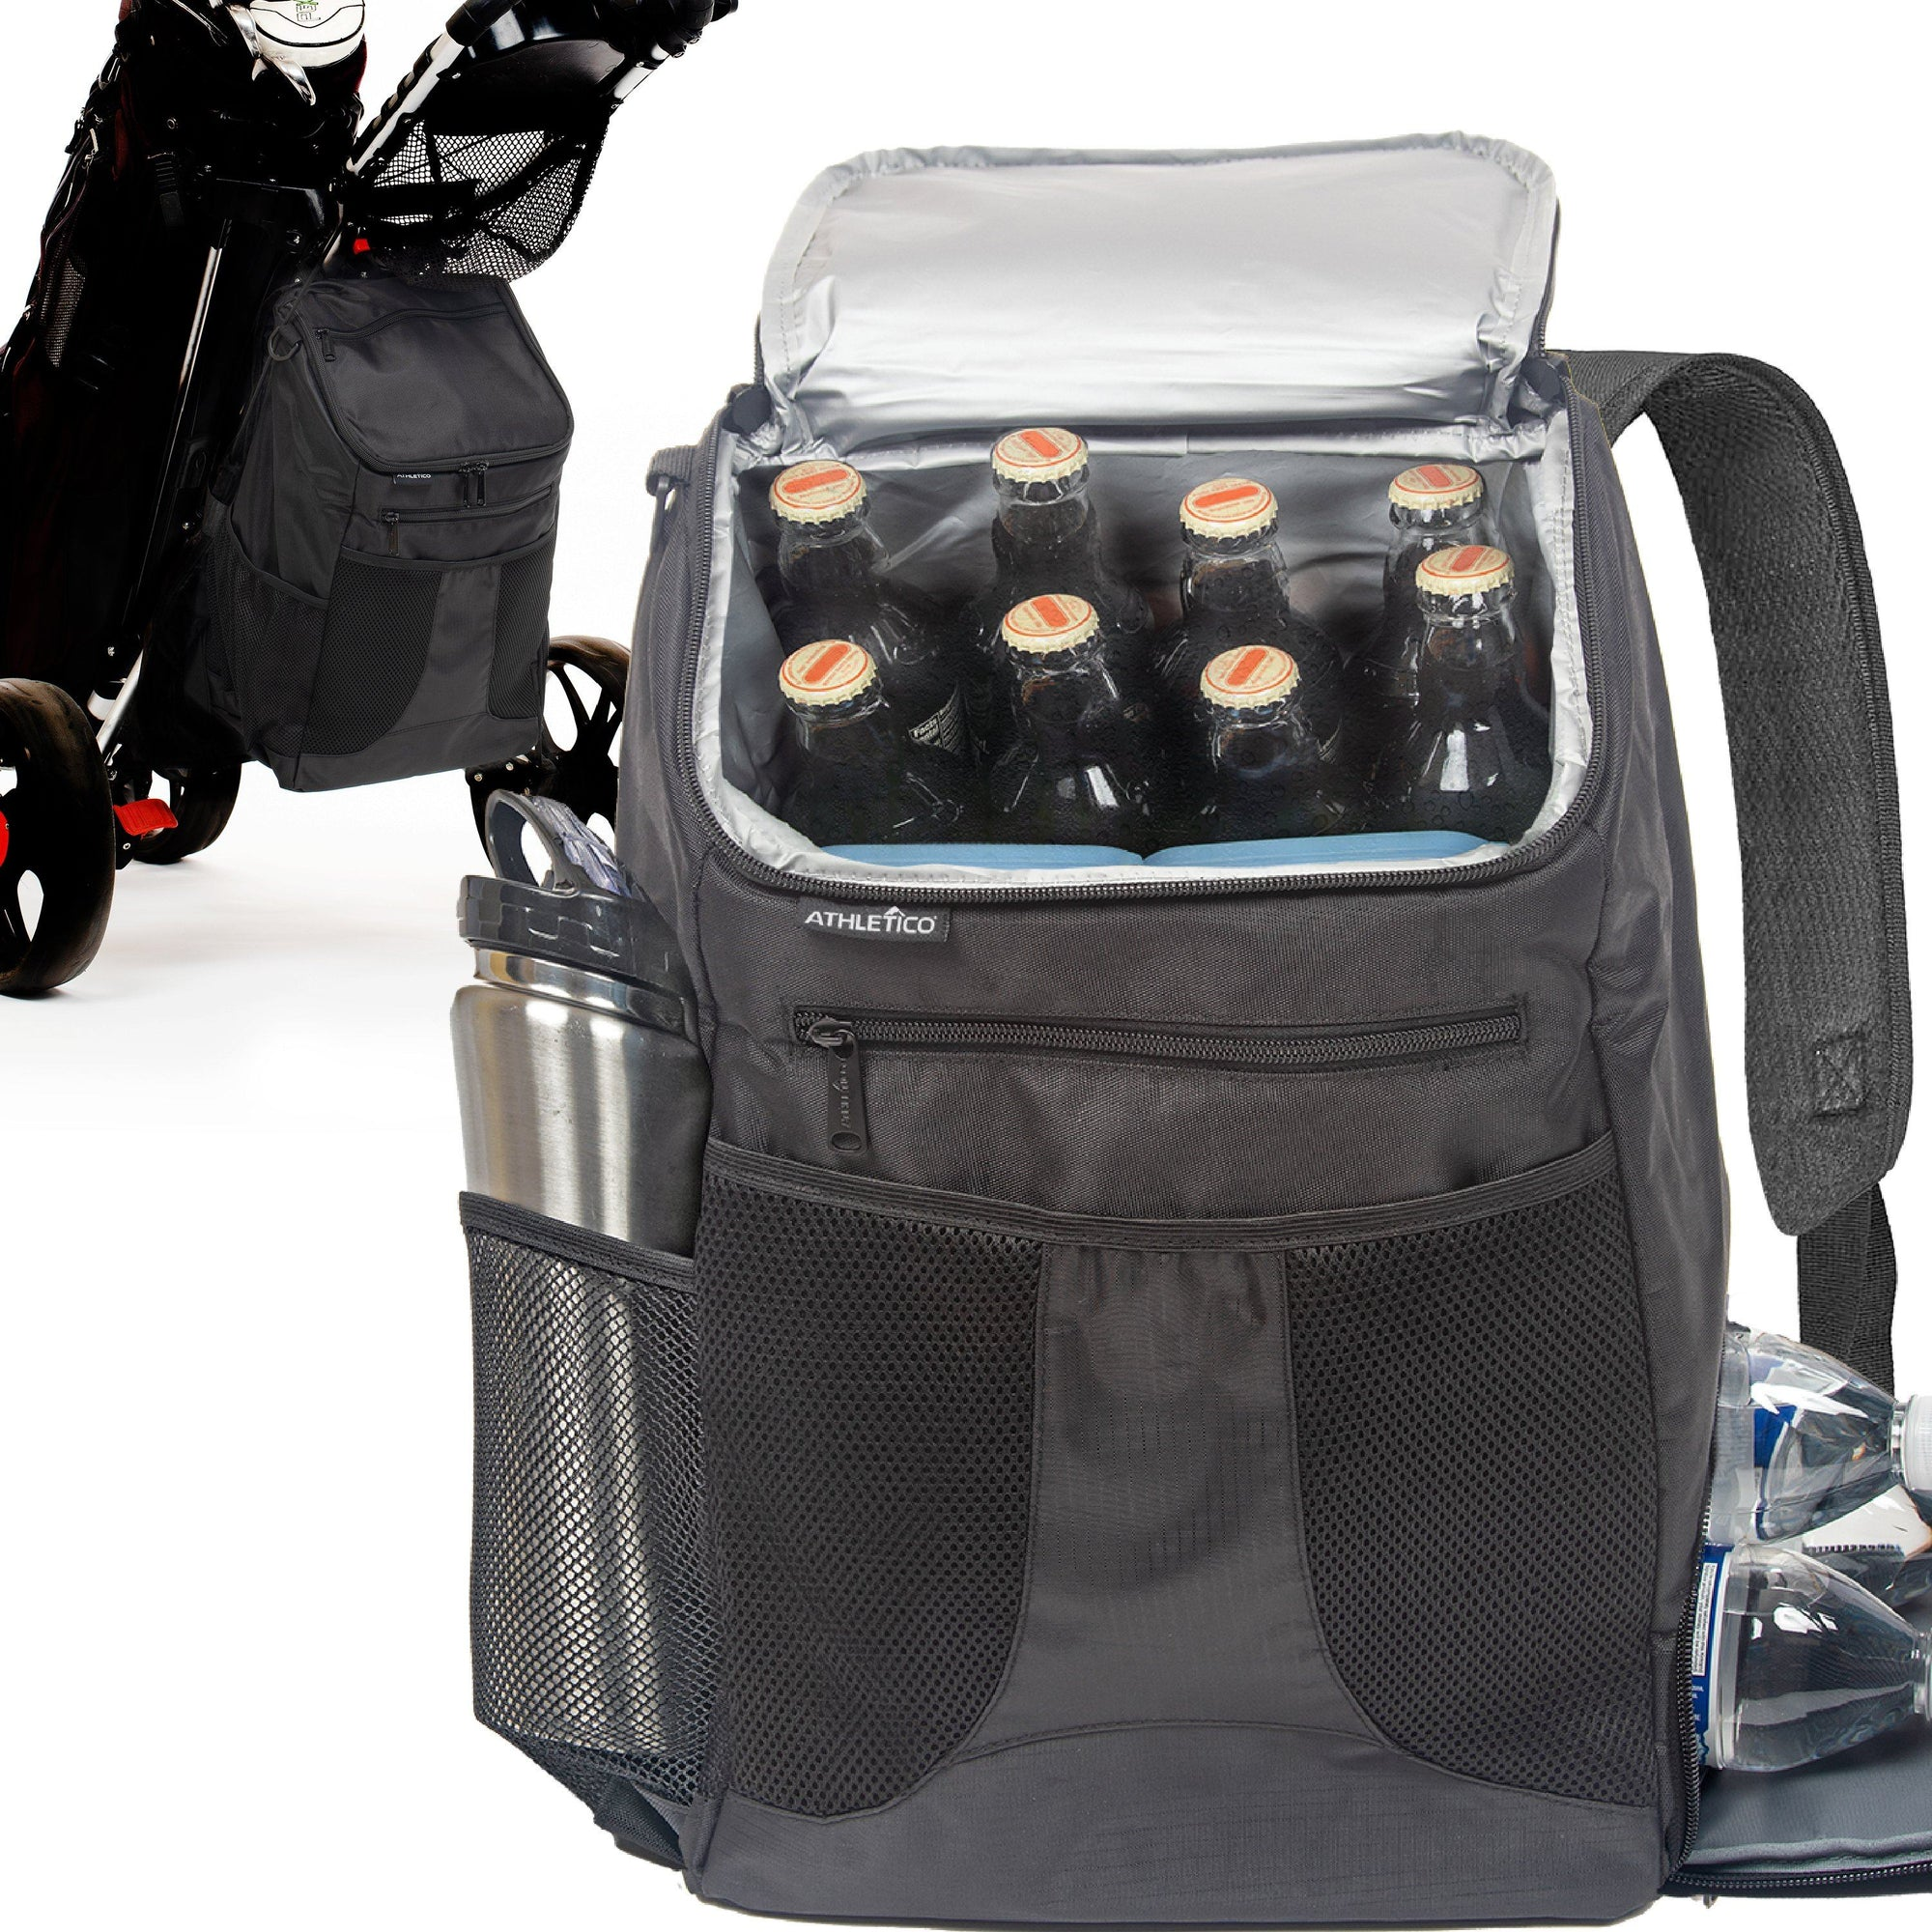 Athletico Golf Cooler Backpack - Athletico